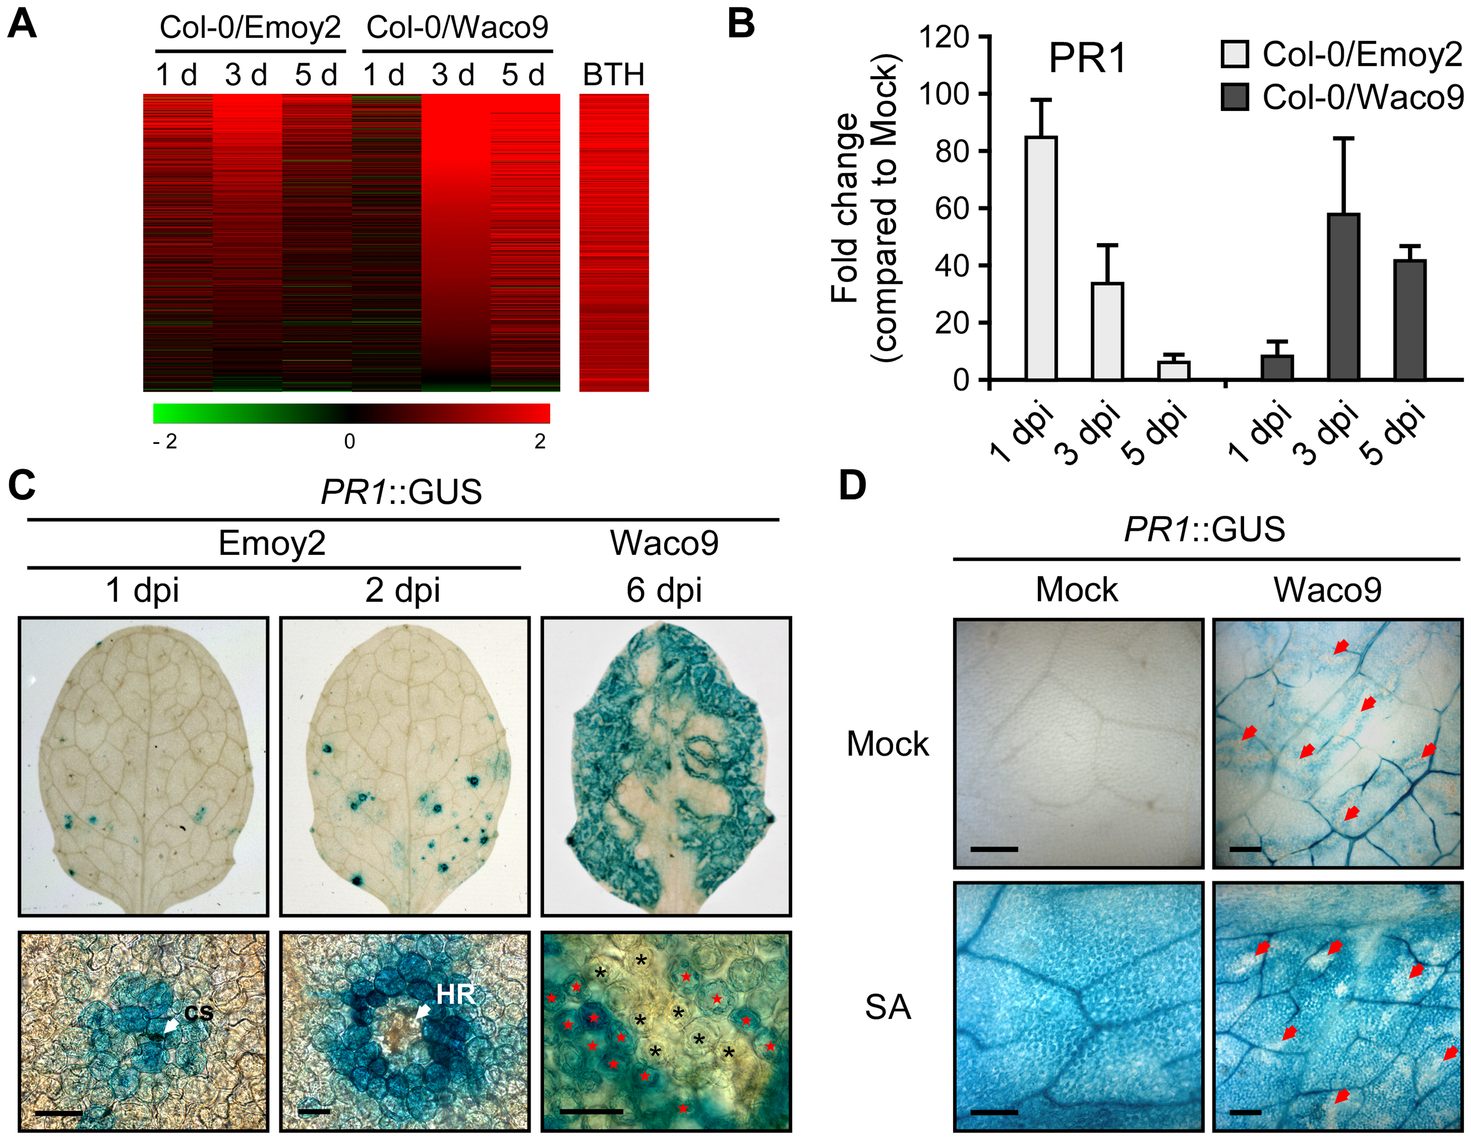 <i>Hpa</i> suppresses <i>PR1</i> expression induced by SA in infected cells.